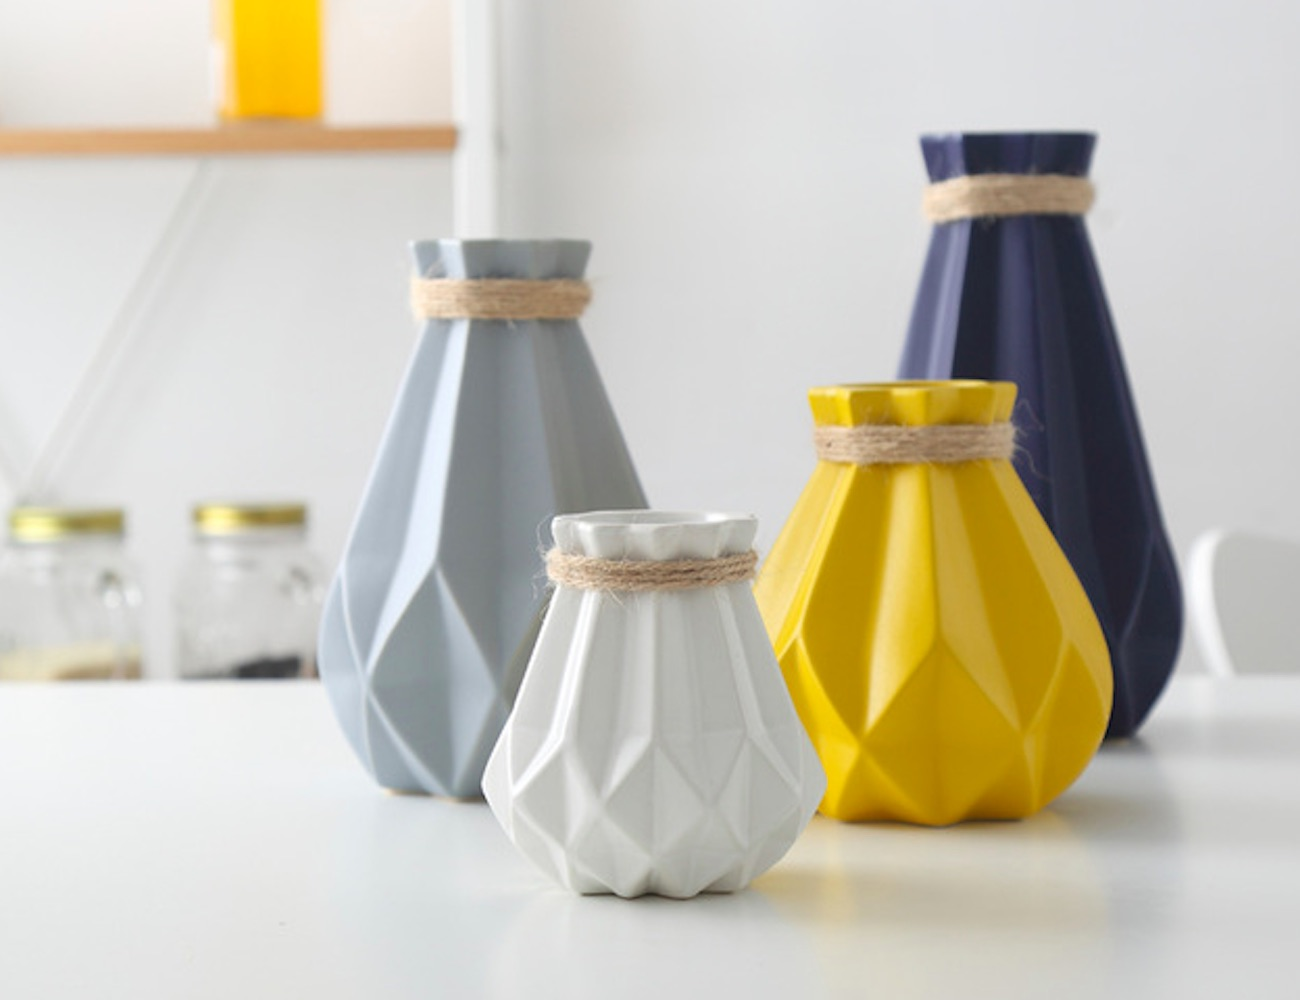 Nordic Style Modern Ceramic Vase is all about simplicity